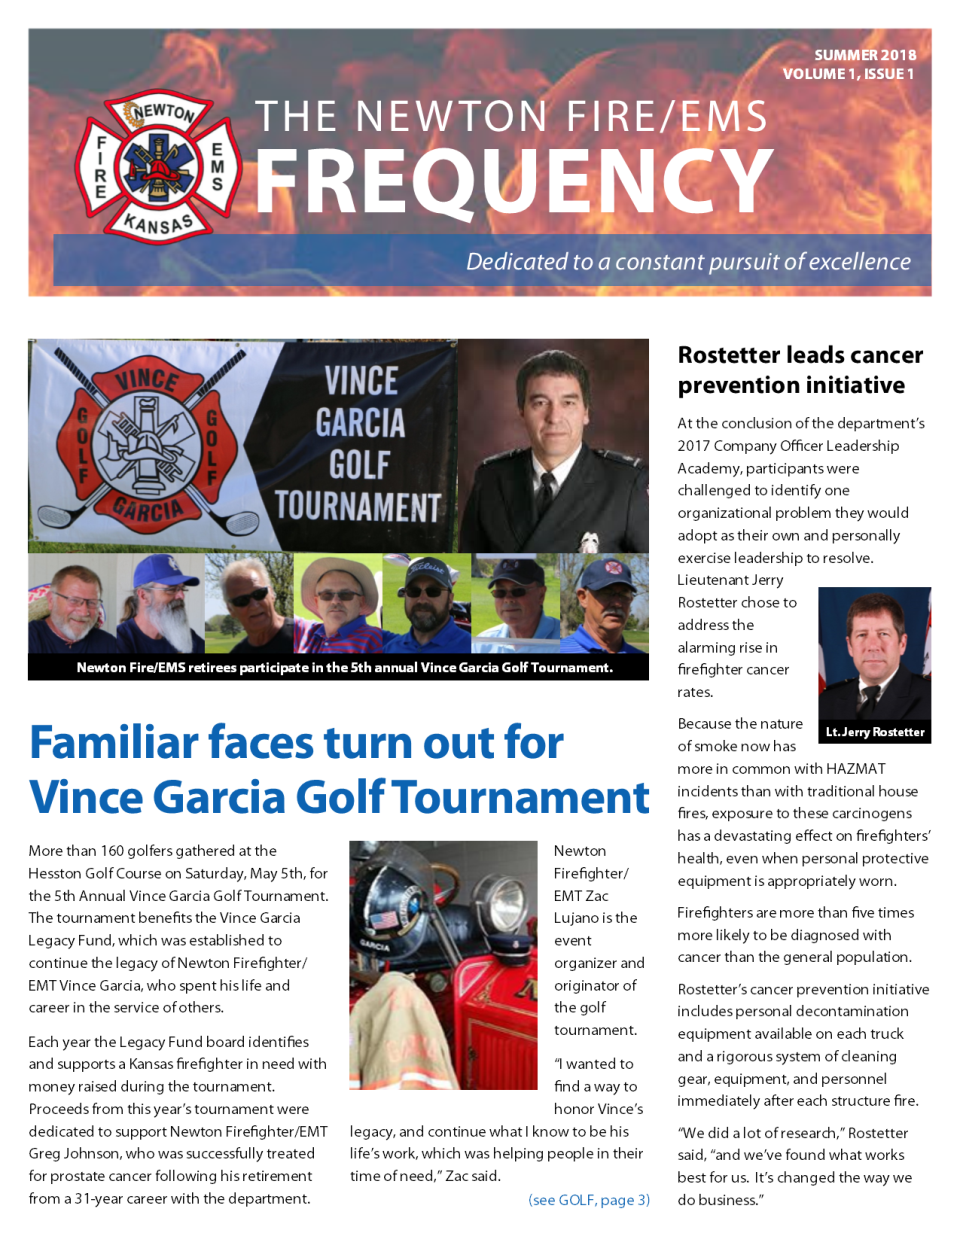 Fire_EMS FREQUENCY Vol I Issue I